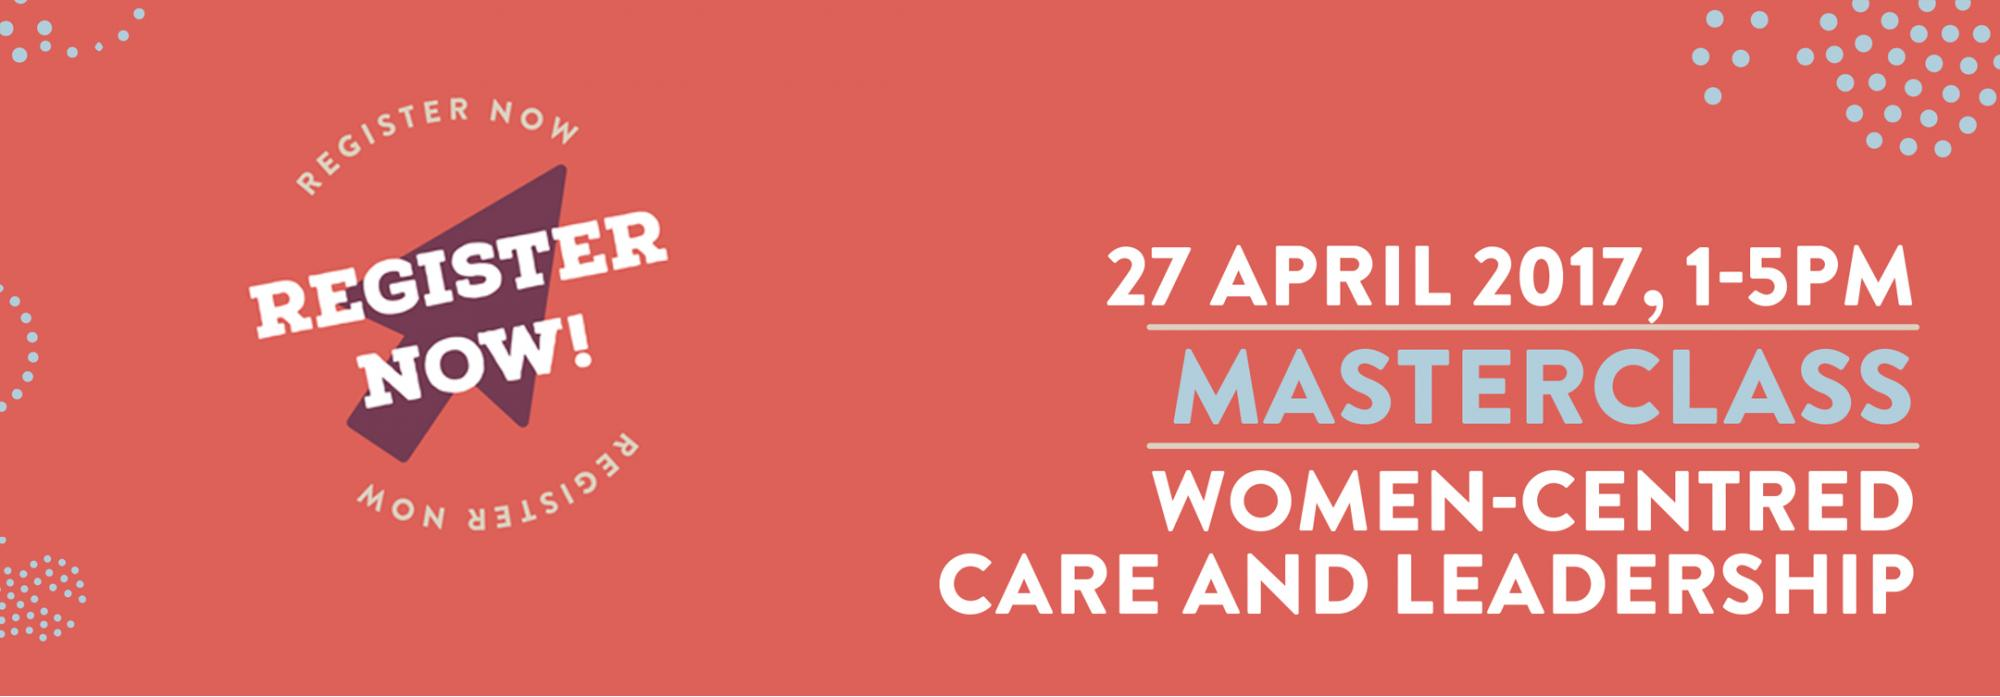 Midwifery Masterclass April 2017: Women-centred Care and Leadership